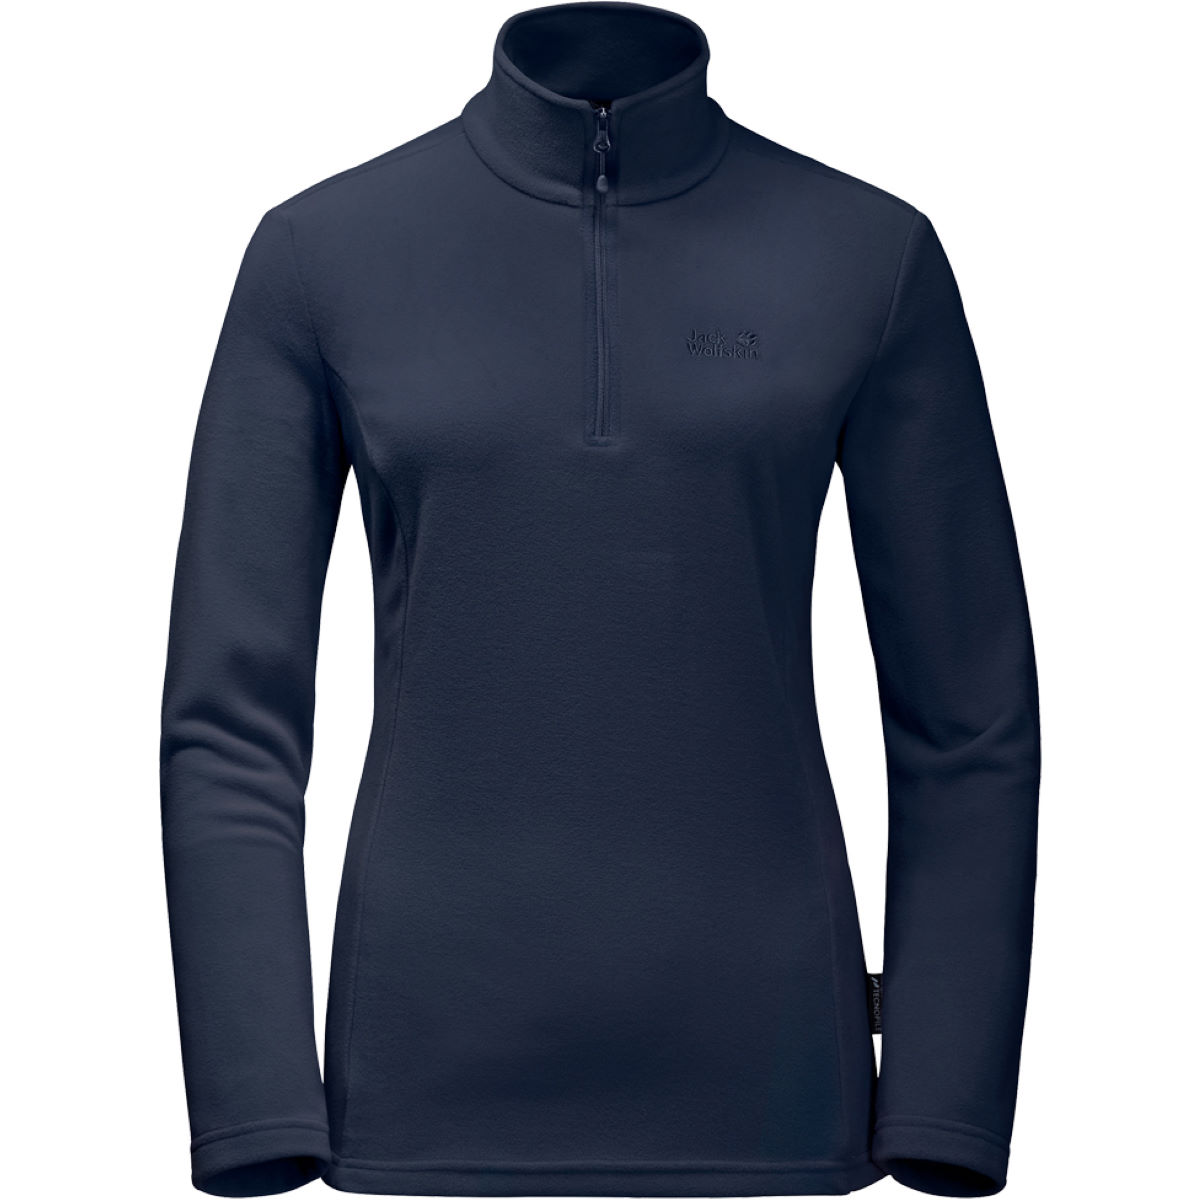 Maillot Femme Jack Wolfskin Gecko - Extra Large Midnight Blue